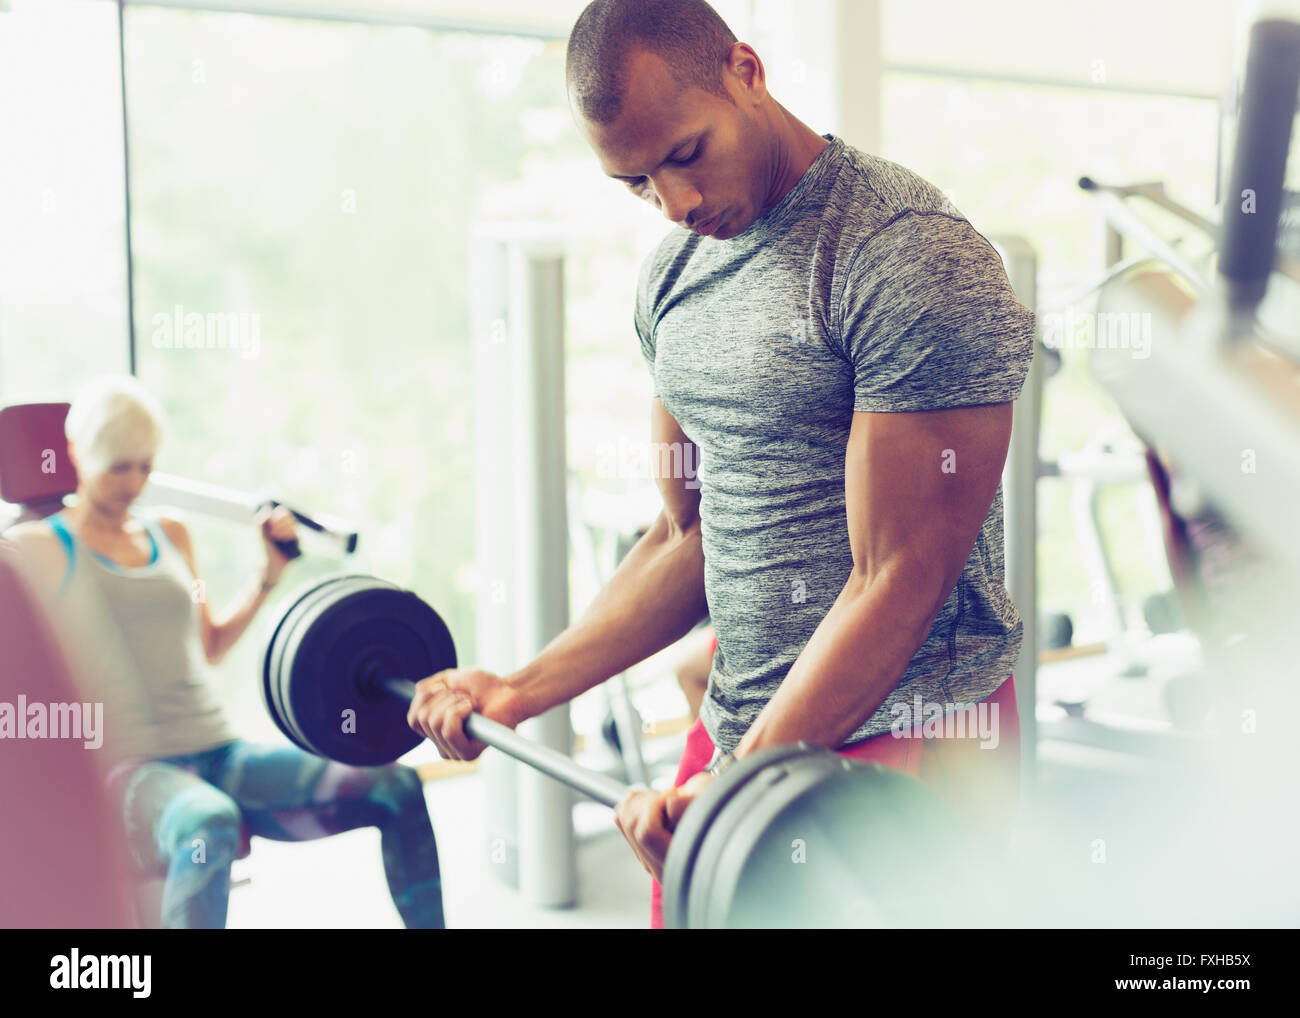 Focused man doing barbell biceps curls at gym - Stock Image